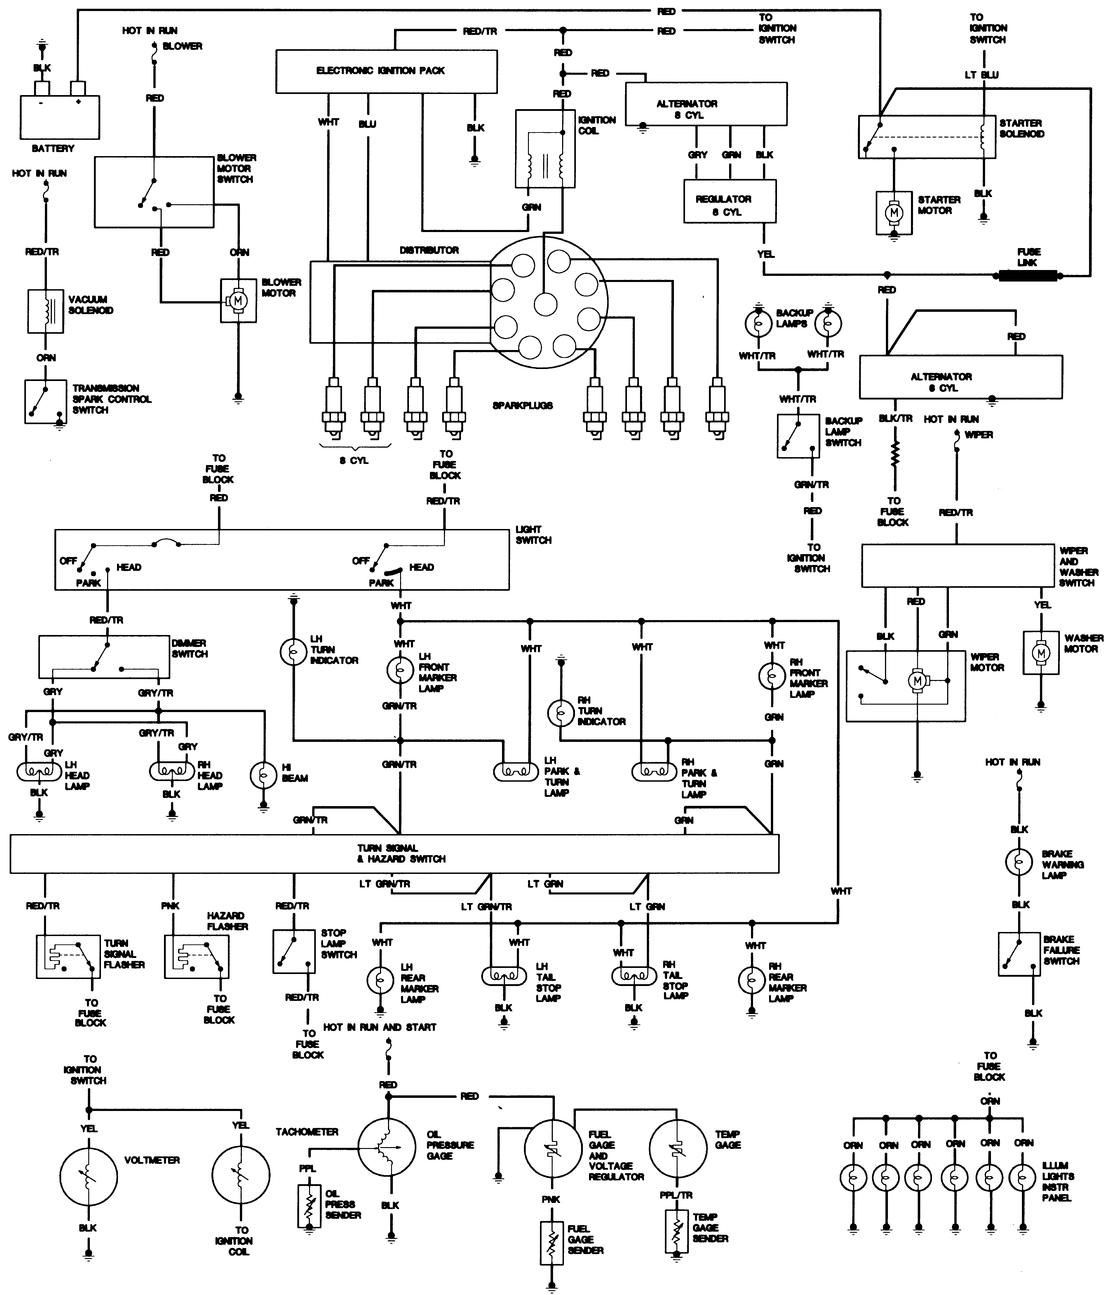 rocker switch wiring diagram best wiring library Illuminated Toggle Switch Wiring 1980 cj5 wiring diagram furthermore jeep cj7 tachometer wiring cj7 windshield wiper wiring 1980 cj5 wiring